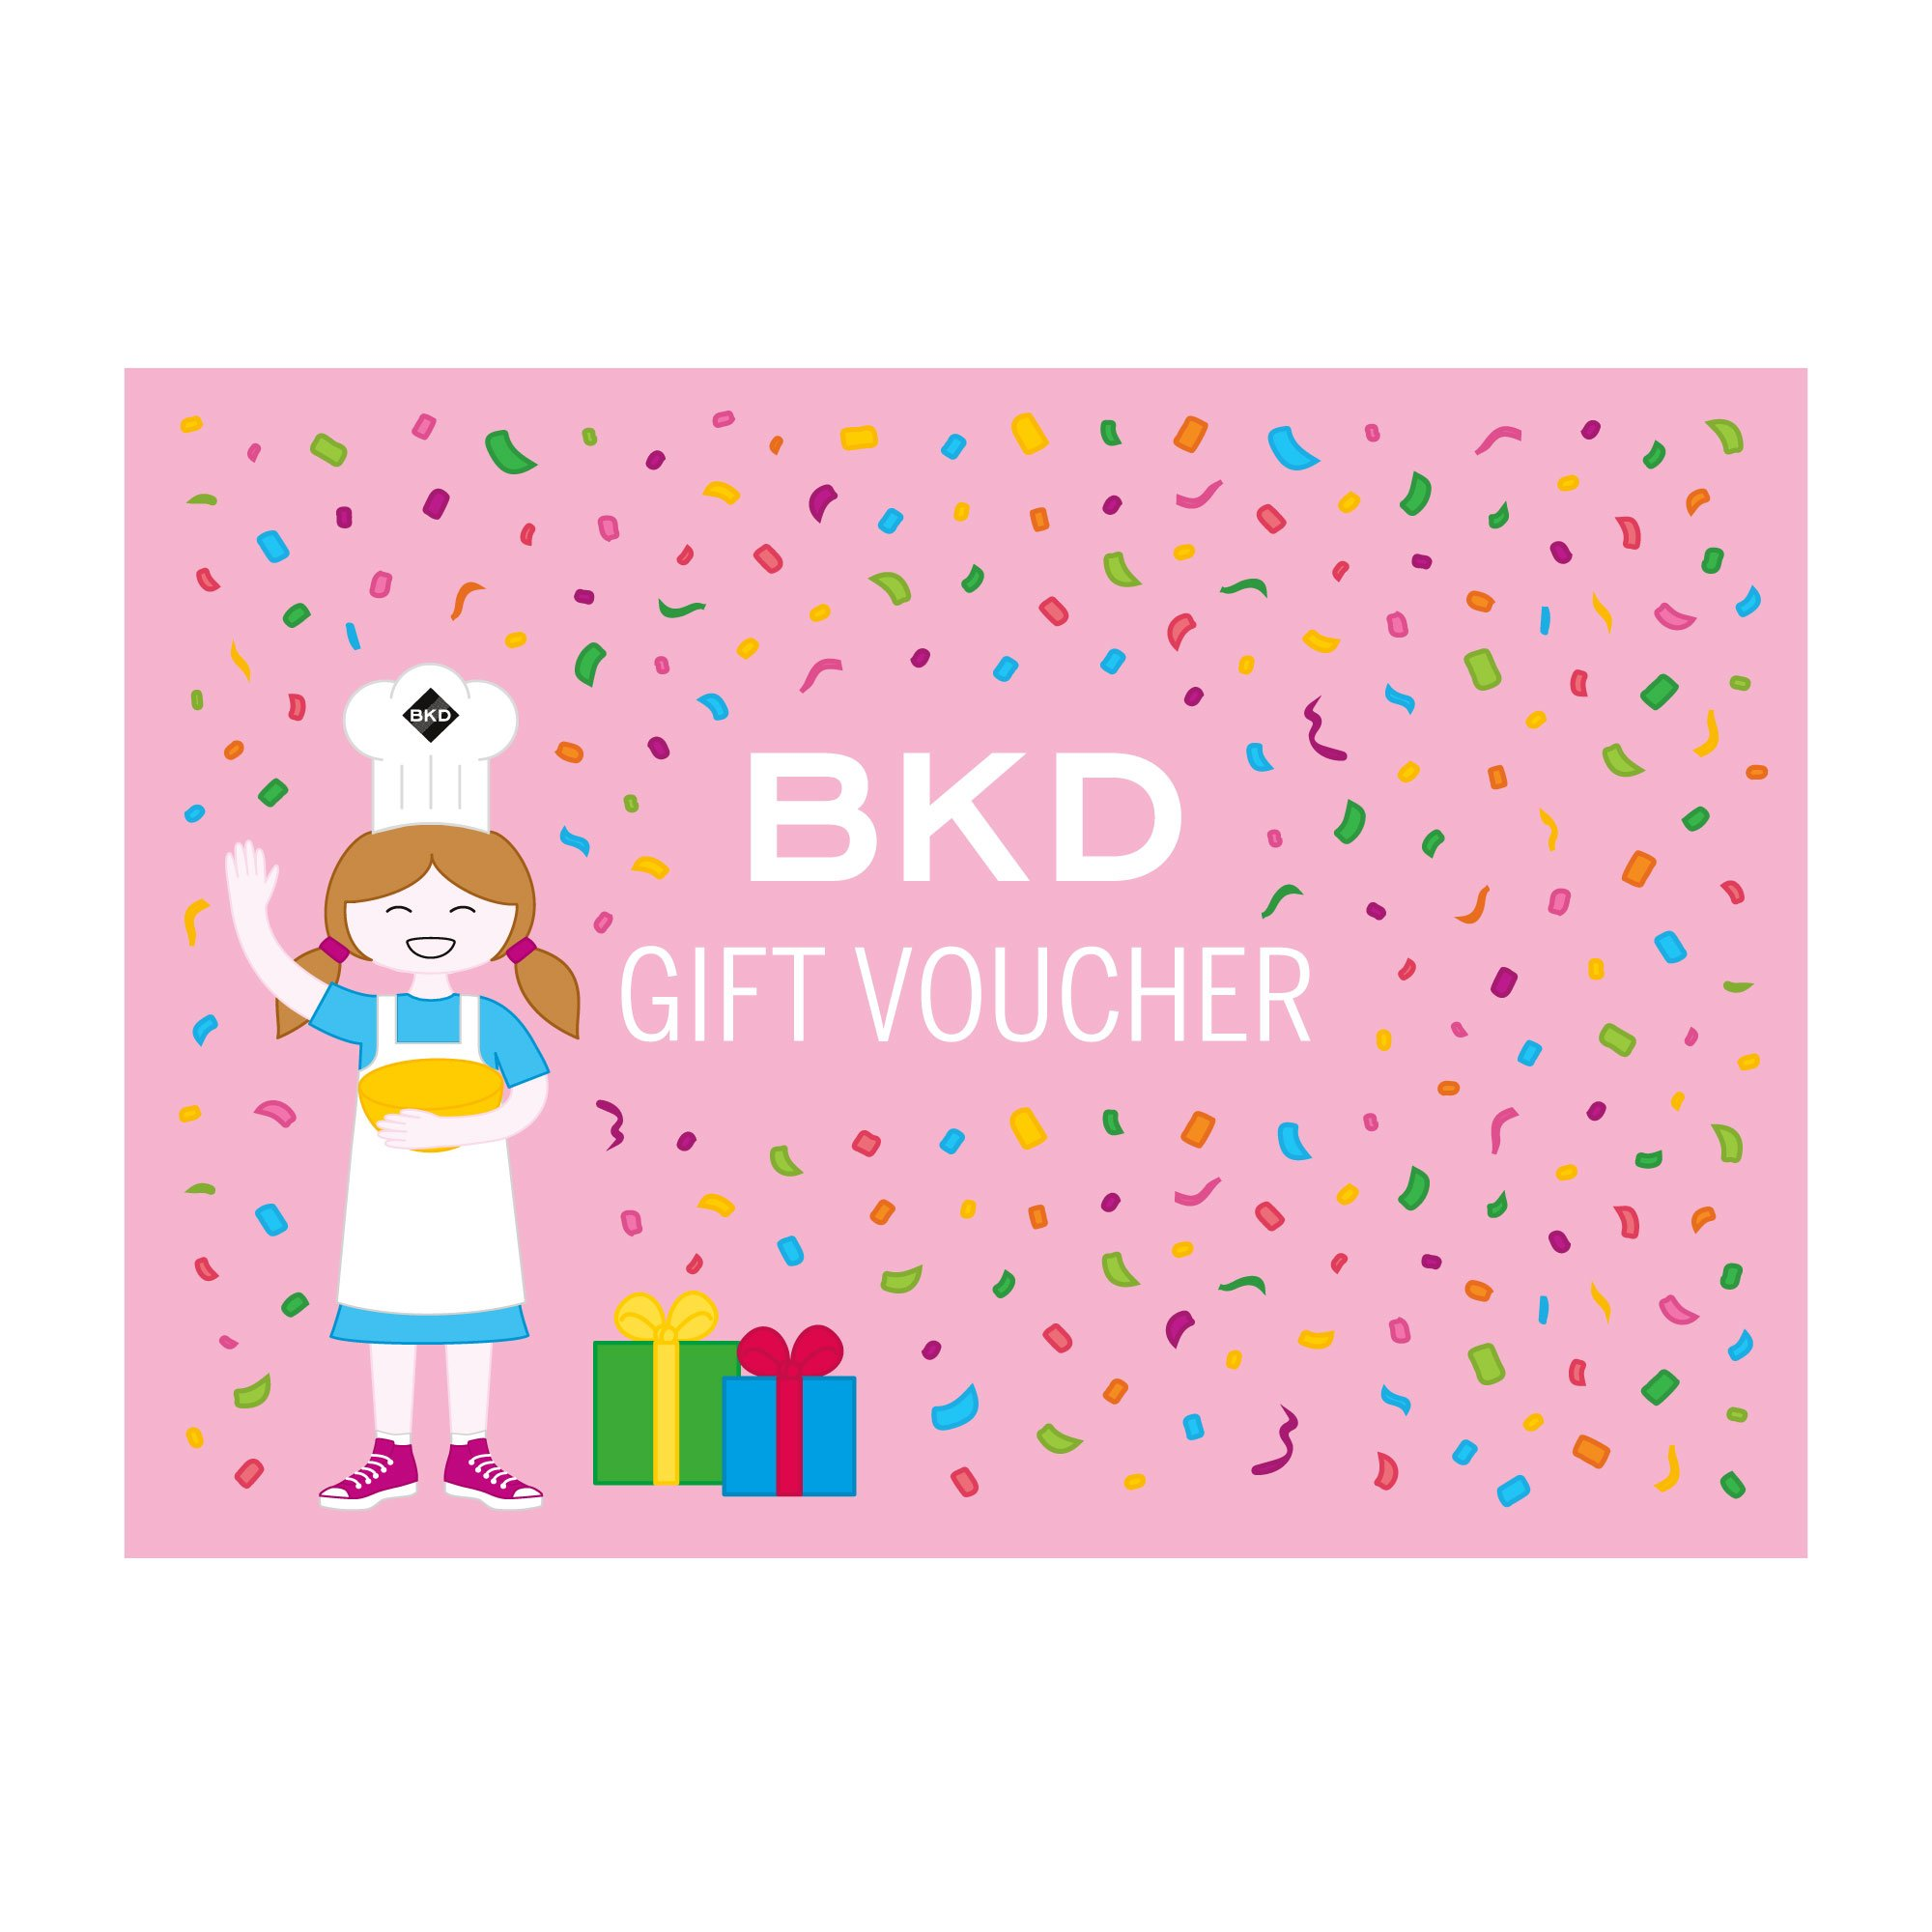 Digital Gift Voucher - BKD